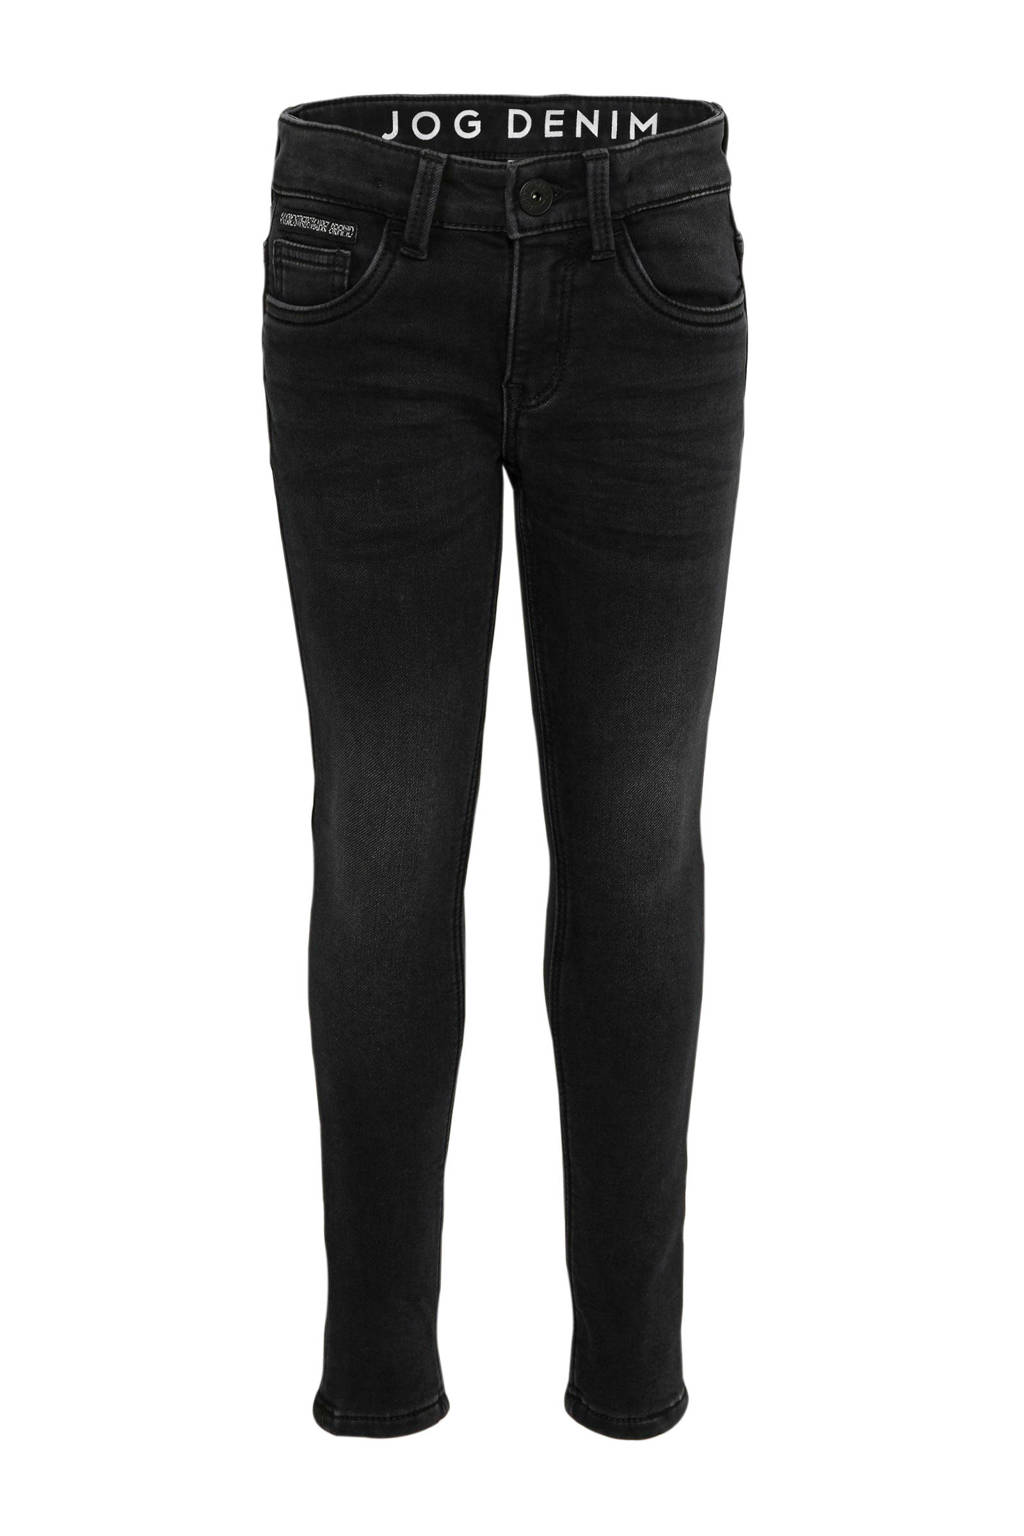 C&A Here & There skinny jog denim zwart, Zwart